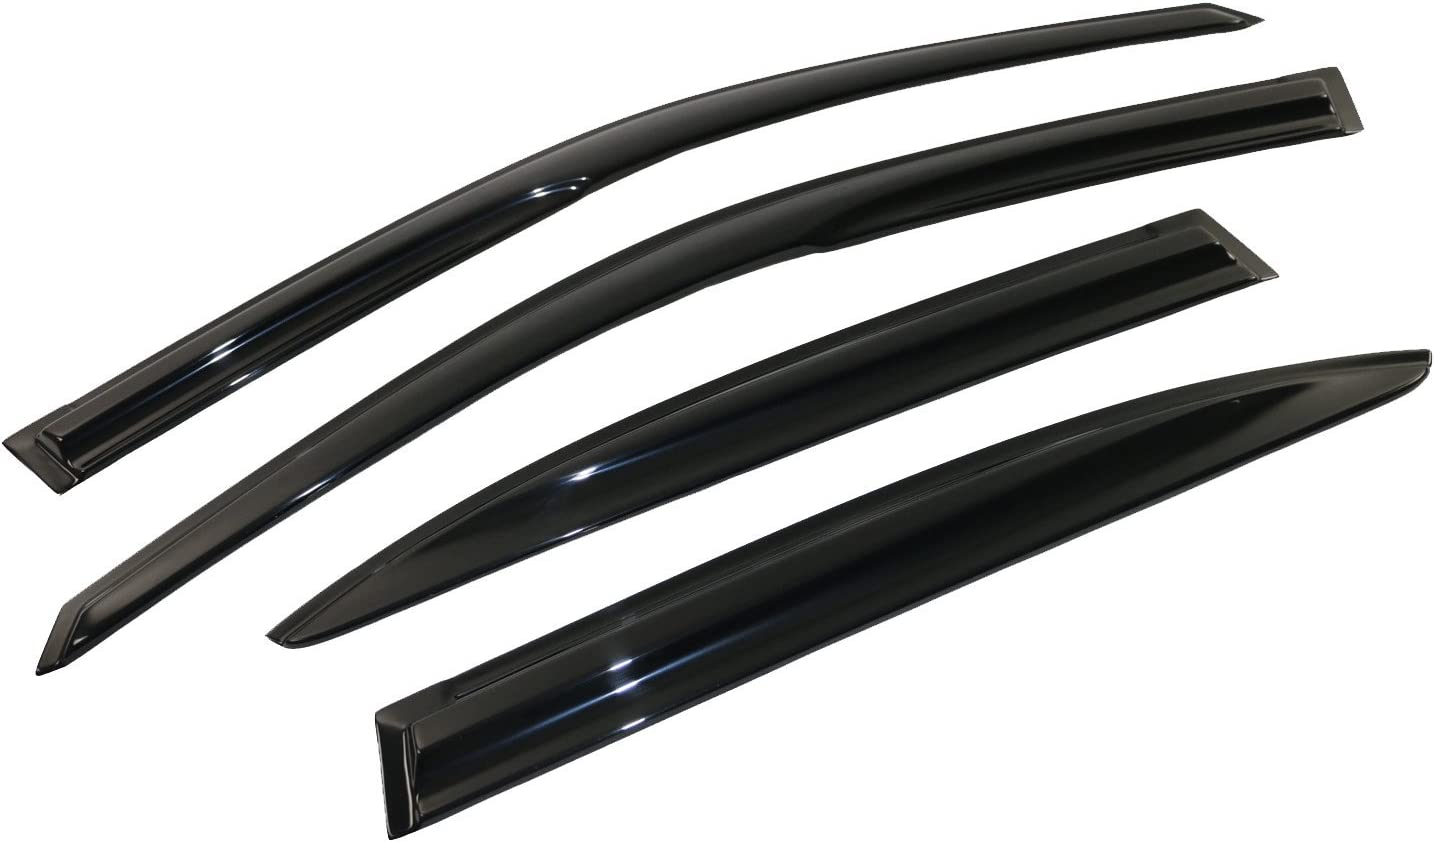 a2z 2001-2005 Honda Civic Sedan Mugen Style Ventvisor Window Deflector Rain Guard 4 Piece